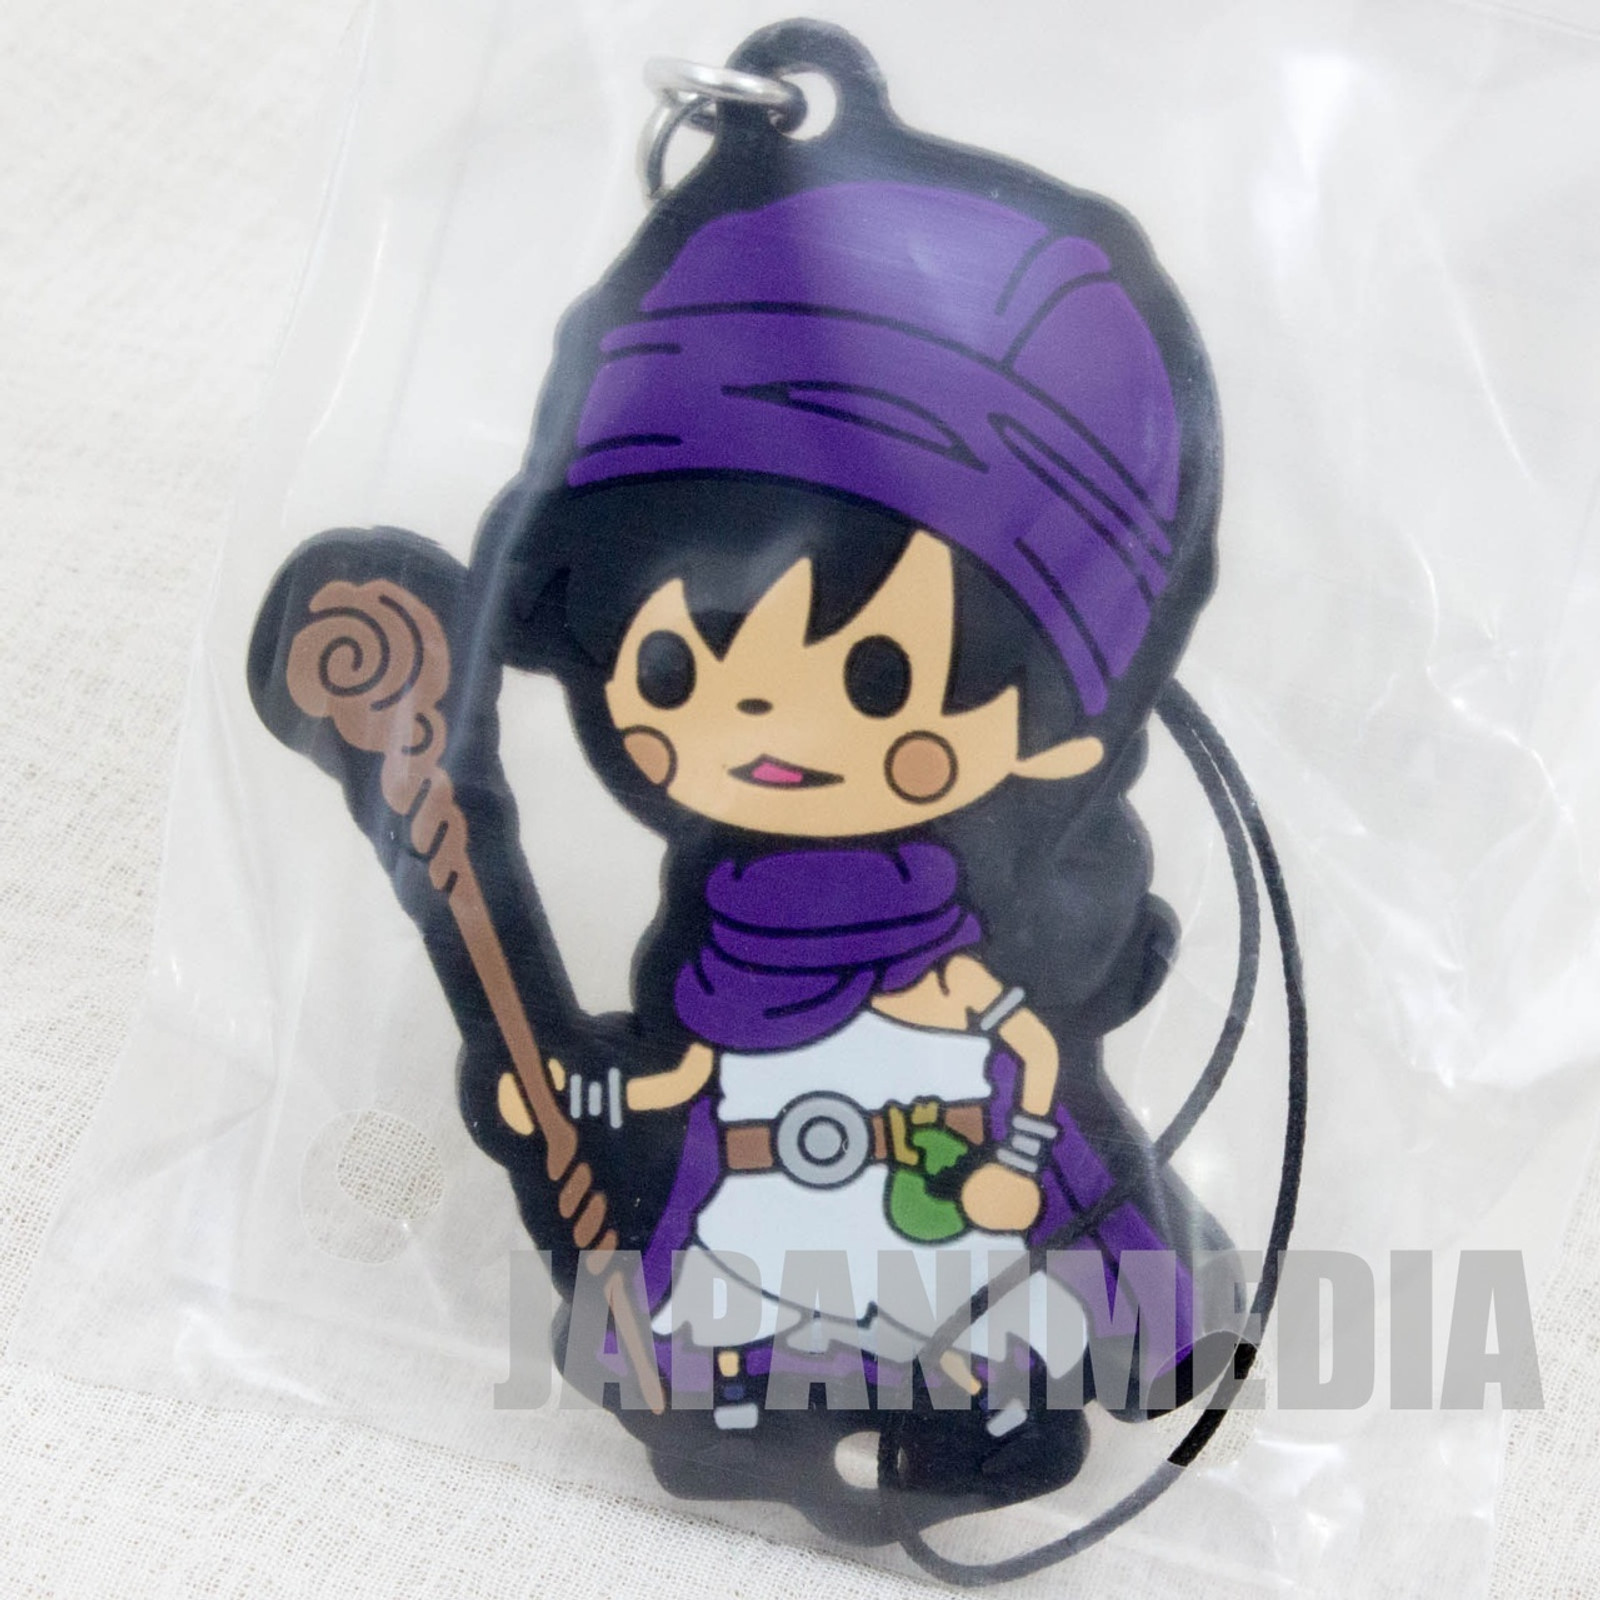 Dragon Quest Theatrhythm Rubber Charm Strap Hero 5 JAPAN GAME WARRIOR